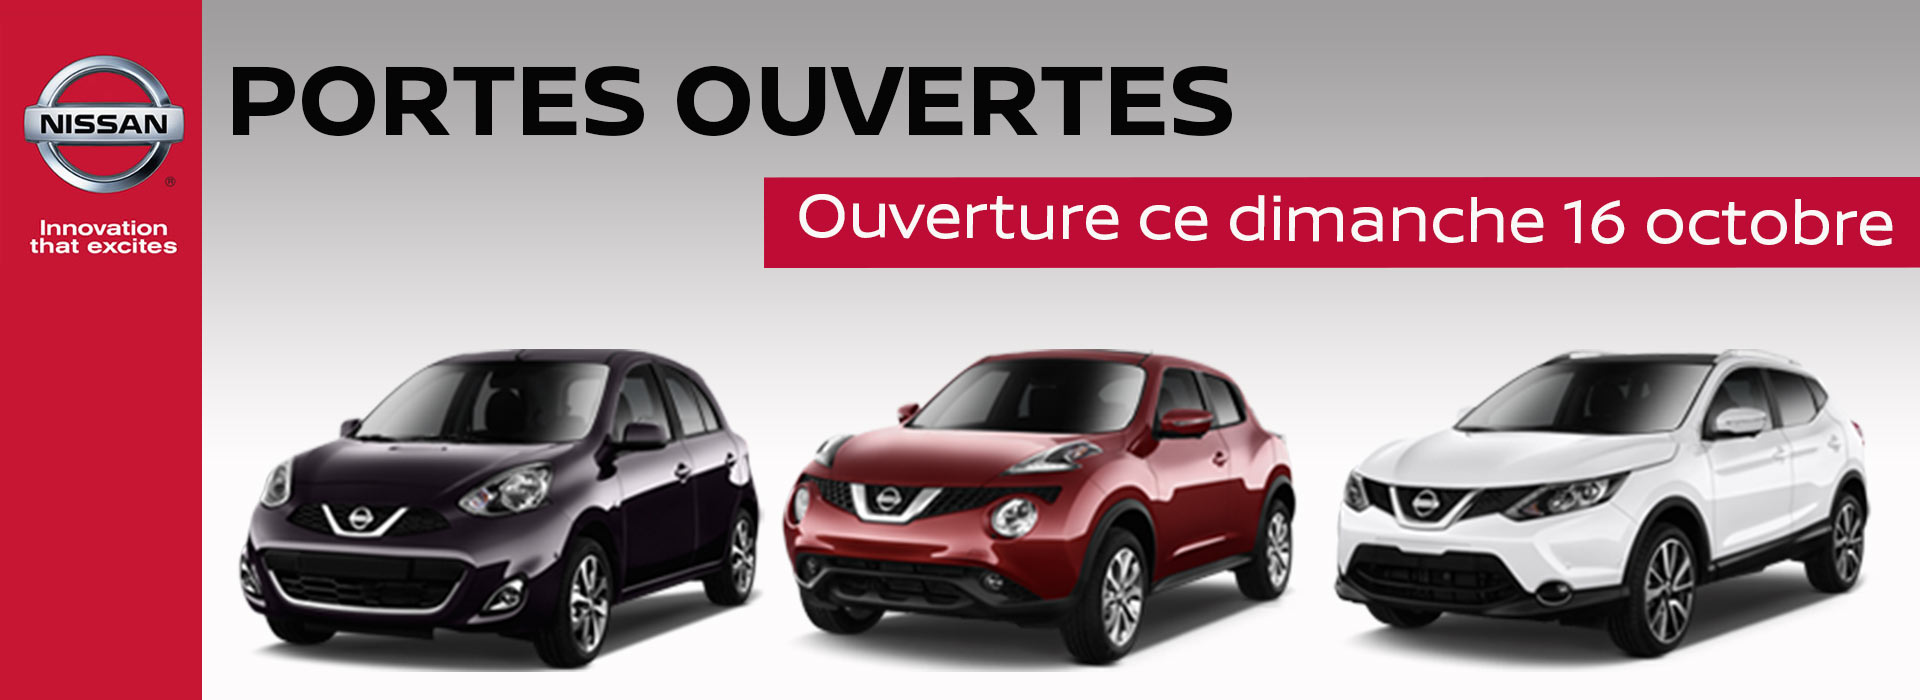 nissan neuves micra juke qashqai navara murano. Black Bedroom Furniture Sets. Home Design Ideas